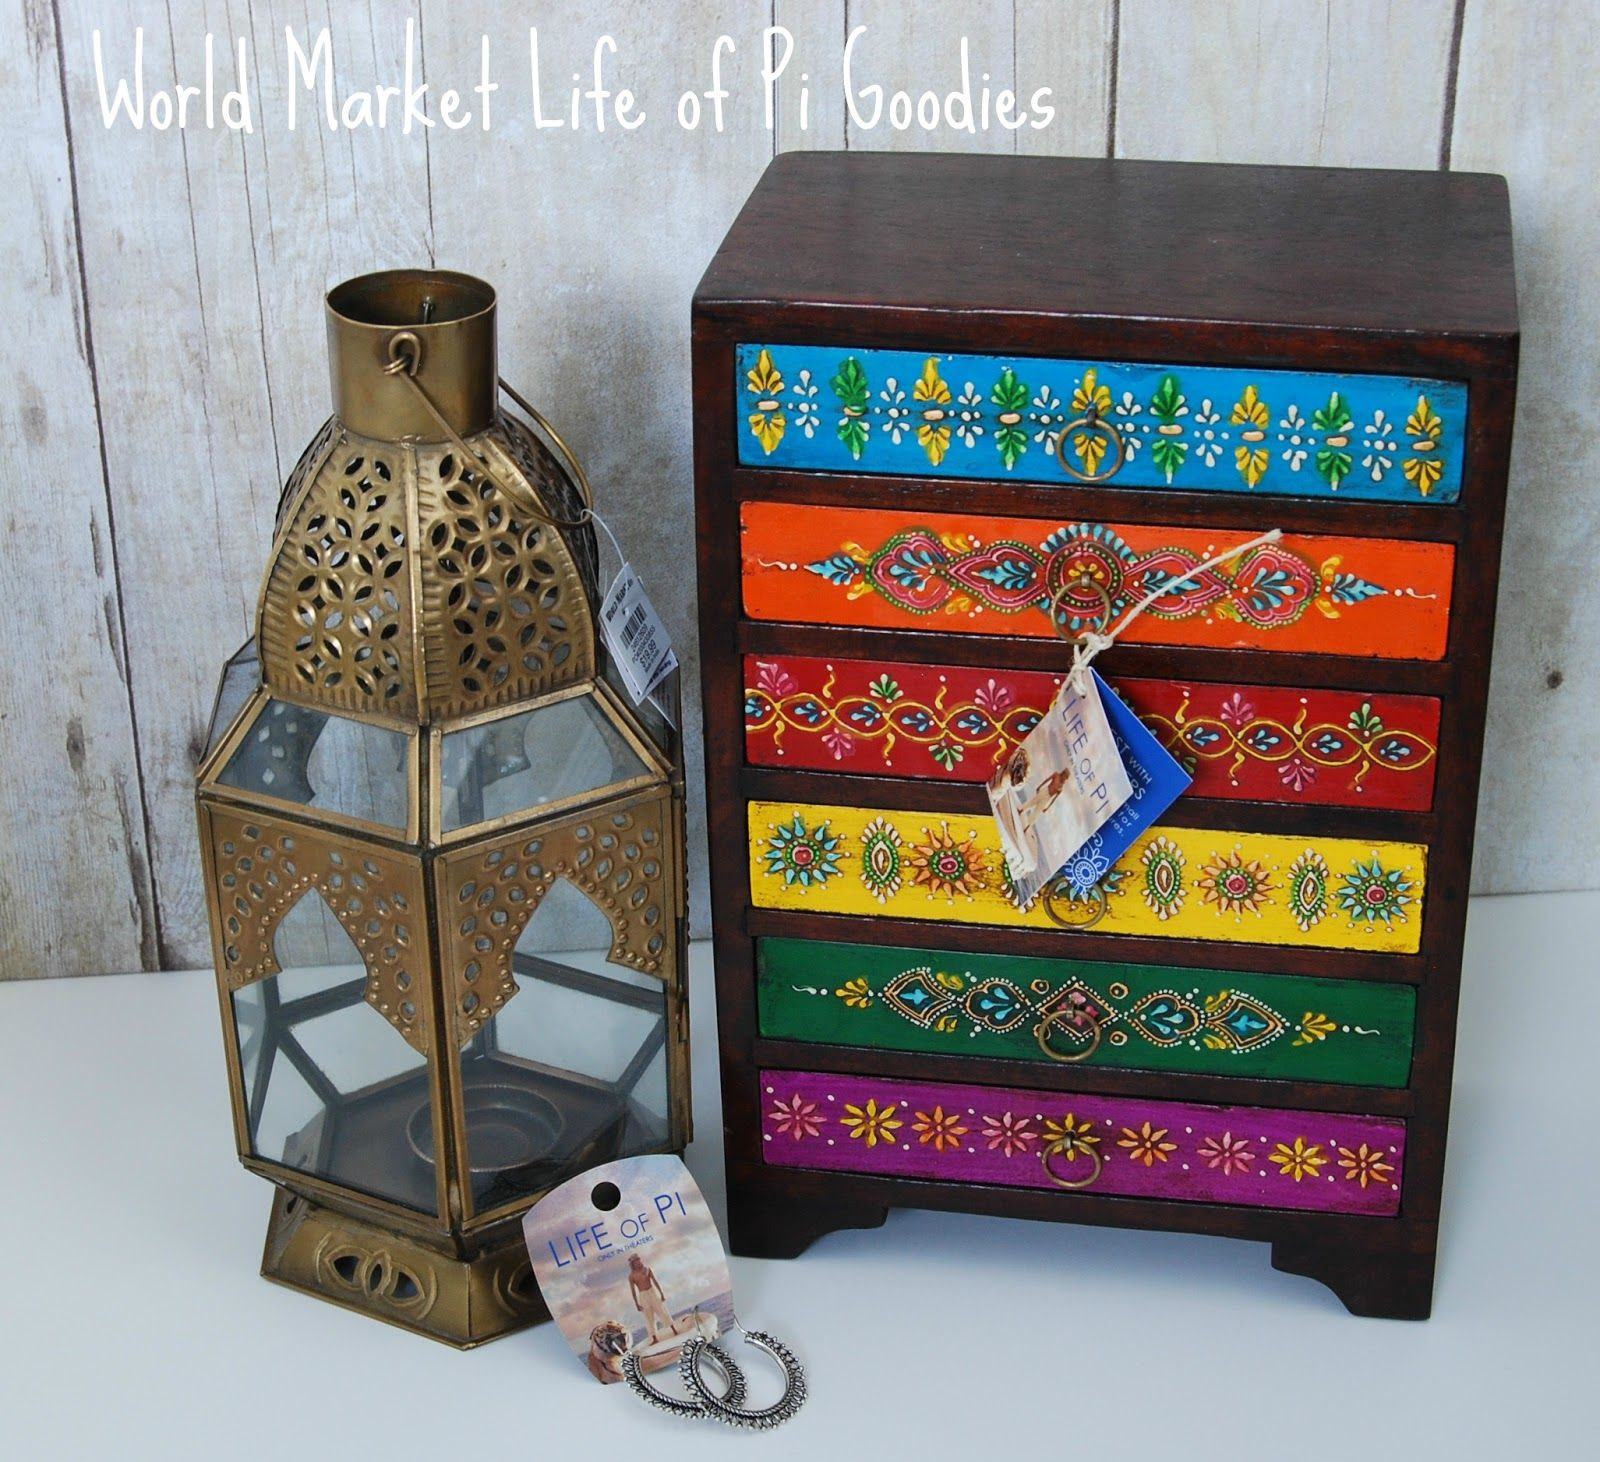 World Market Jewelry Box Unique Worldmarketlifeofpipurchases 1600×1462  Kdeb  Pinterest 2018